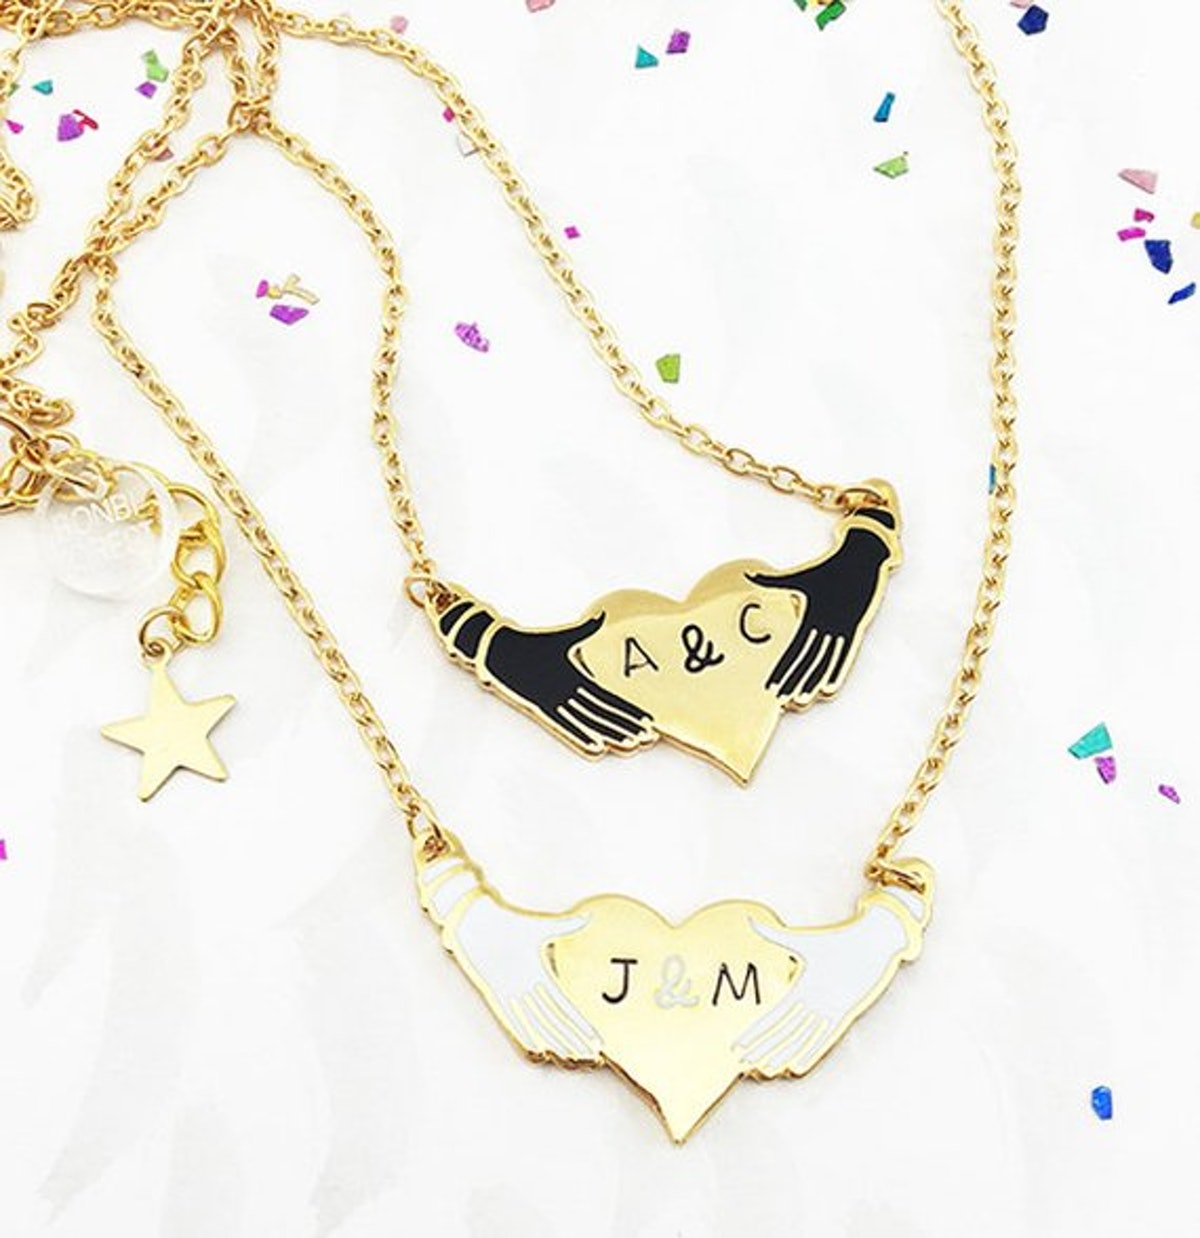 Hands and Heart Personalized Enamel Necklace